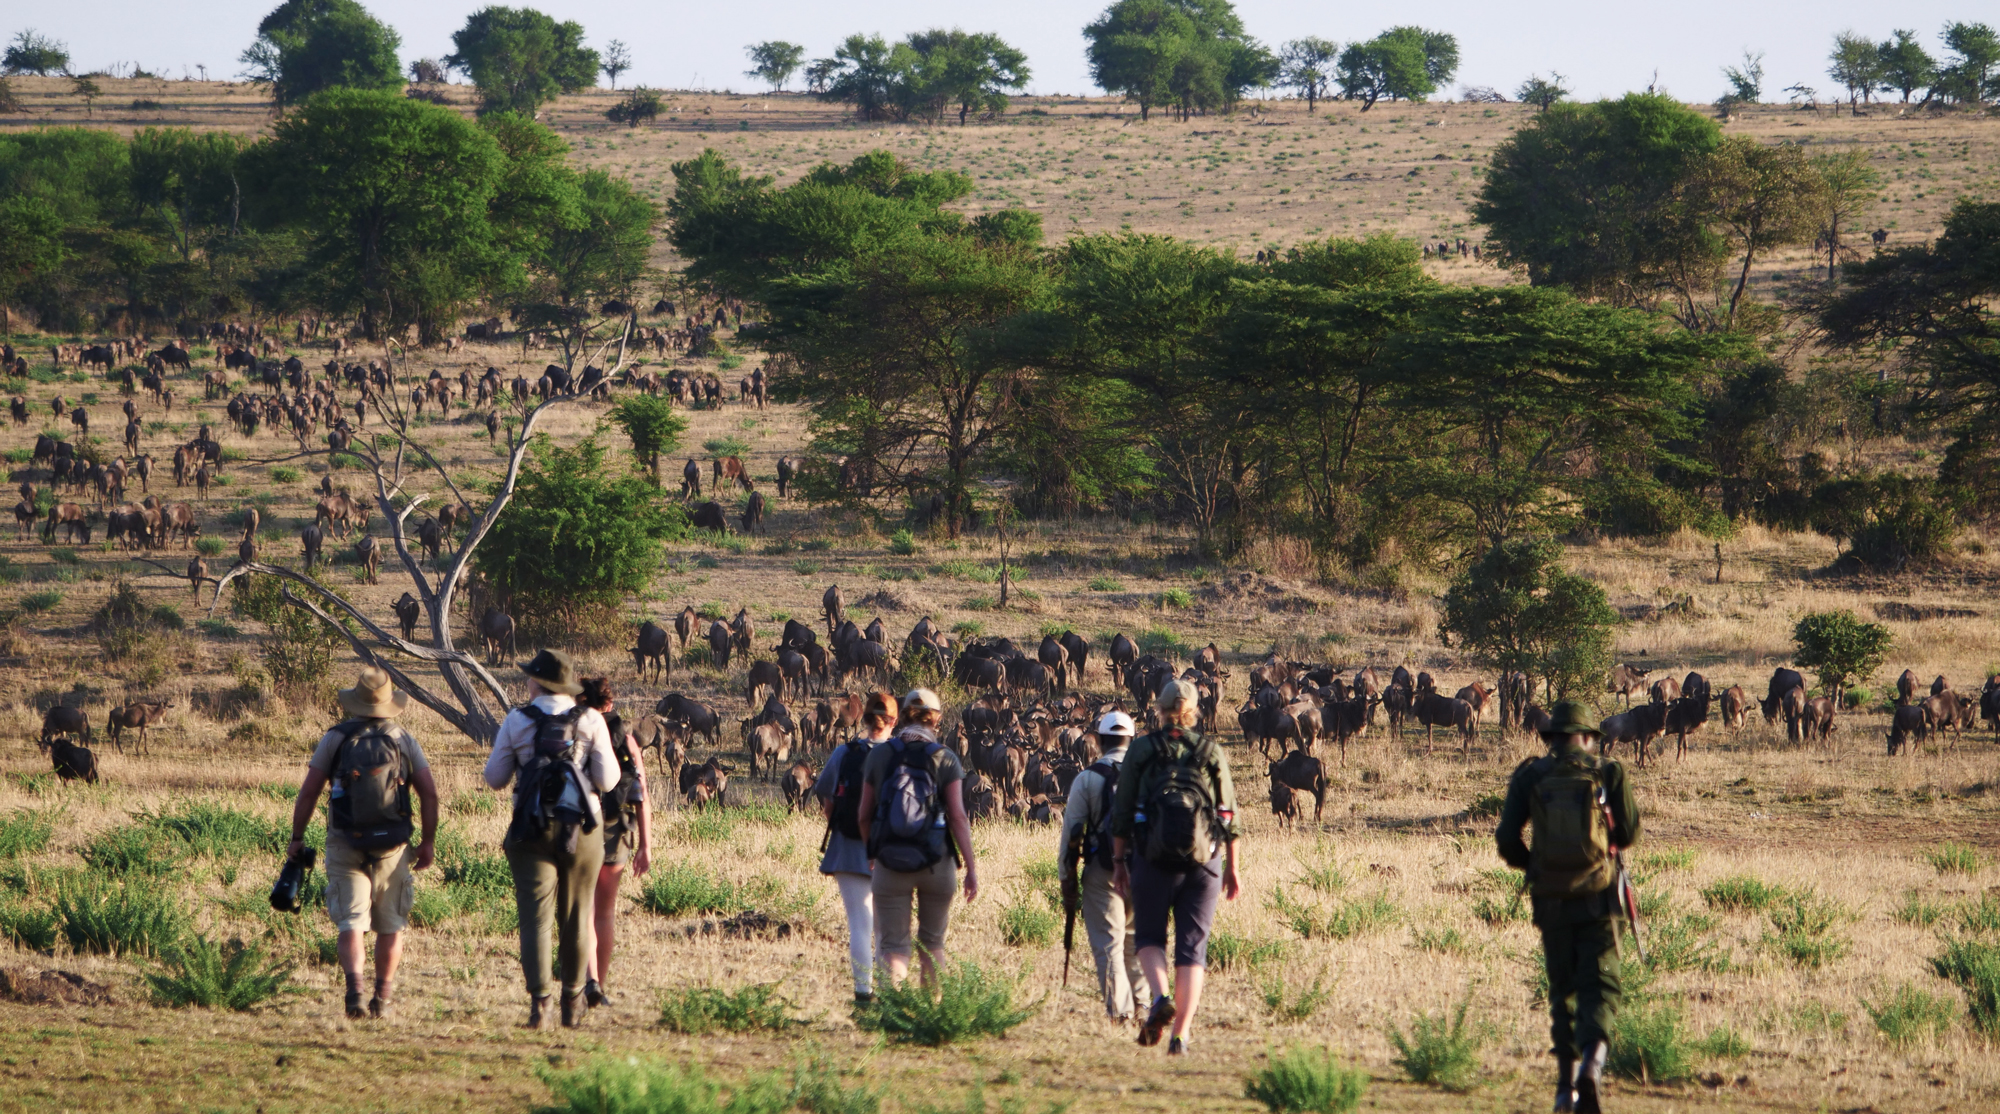 Walking safari guests approaching herd of wildebeests in Serengeti